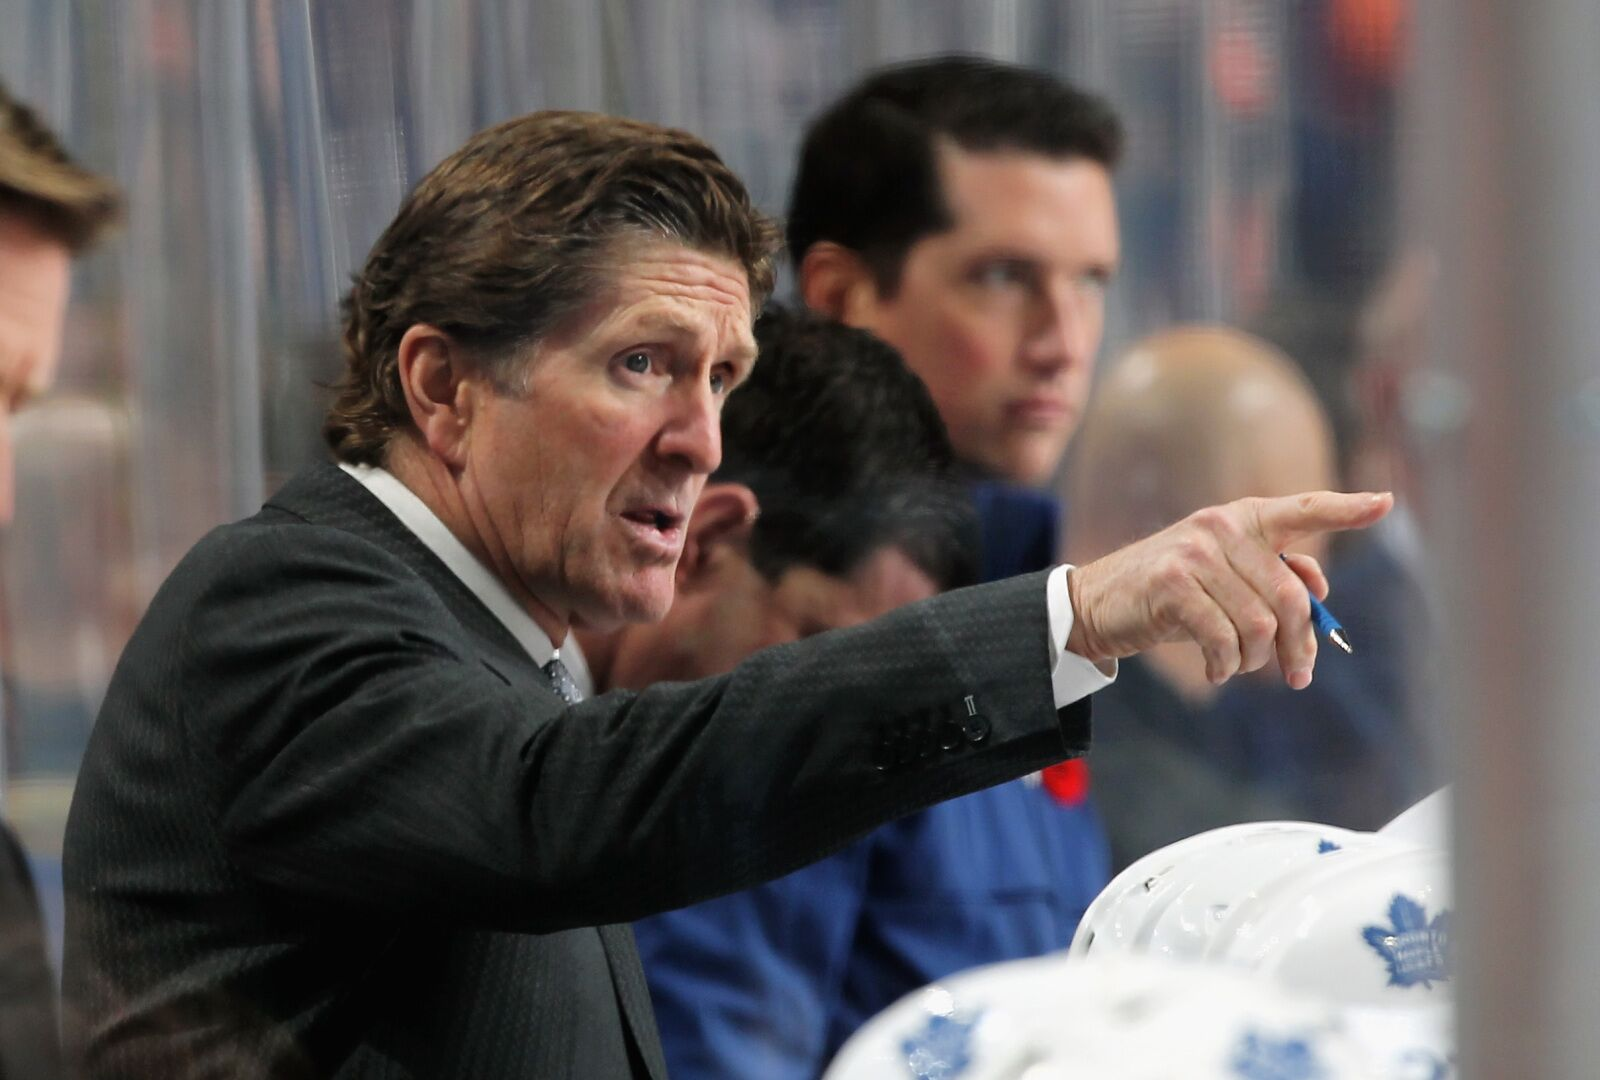 New Jersey Devils: Timing Wouldn't Be Right to Hire Babcock